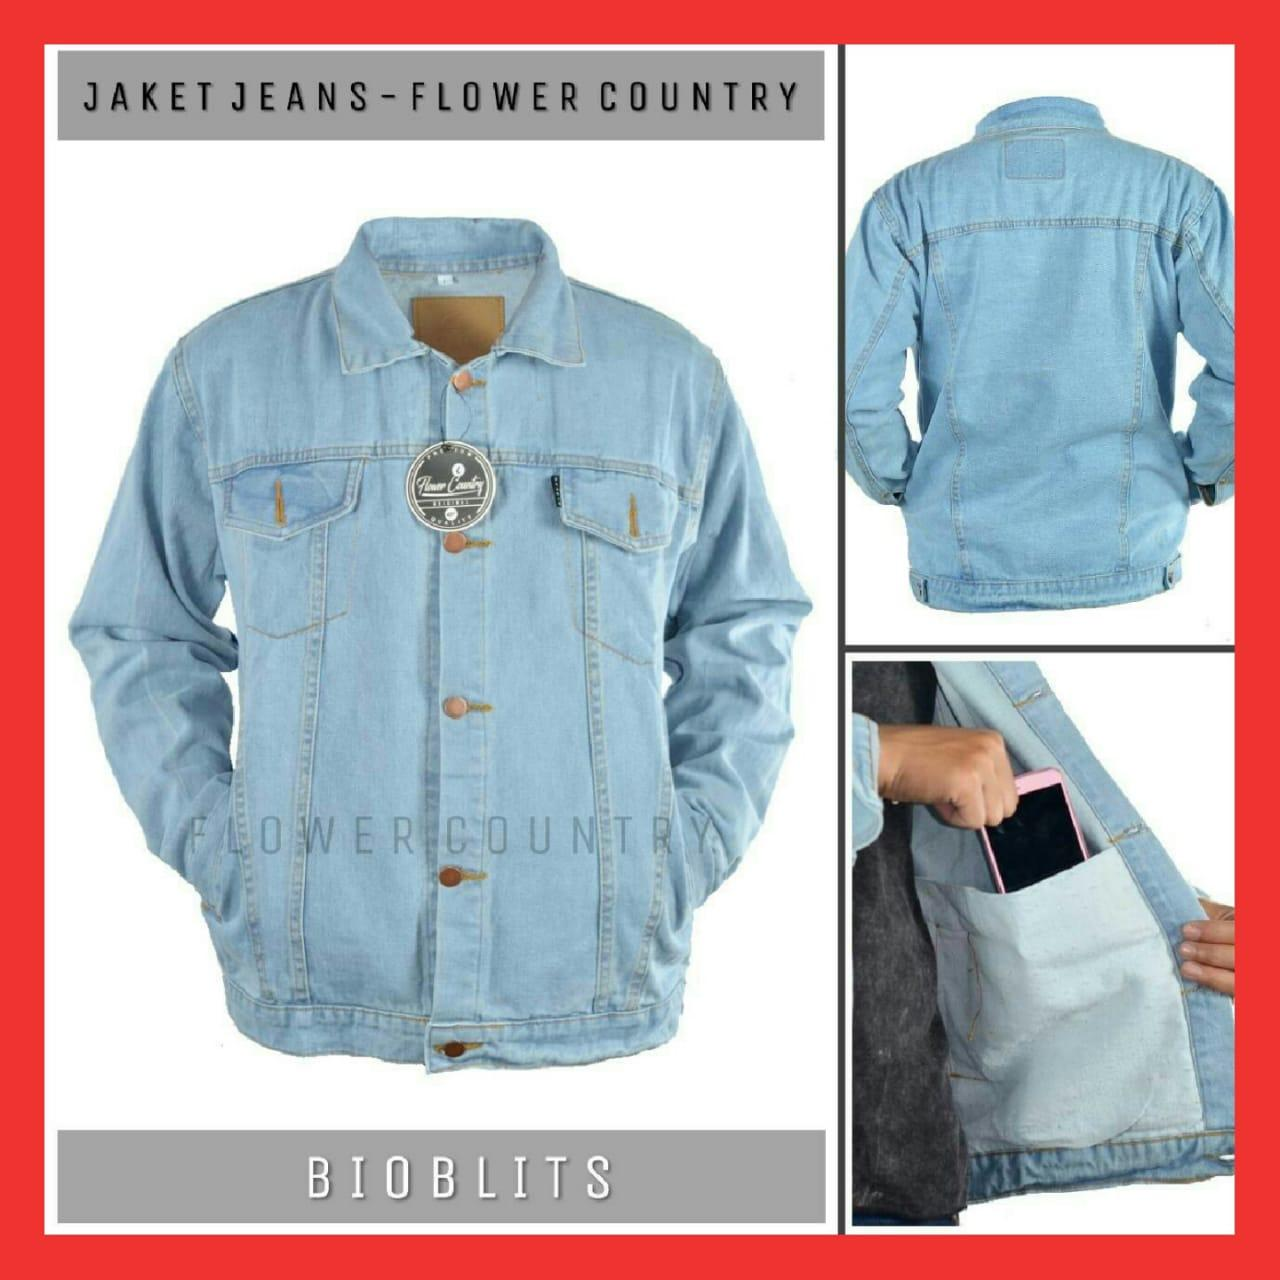 Harga Jual Jaket Jeans Levis 152000 Shot Last Week In New York Hijau Army Unisex Buy Sell Cheapest Denim Best Quality Product Deals